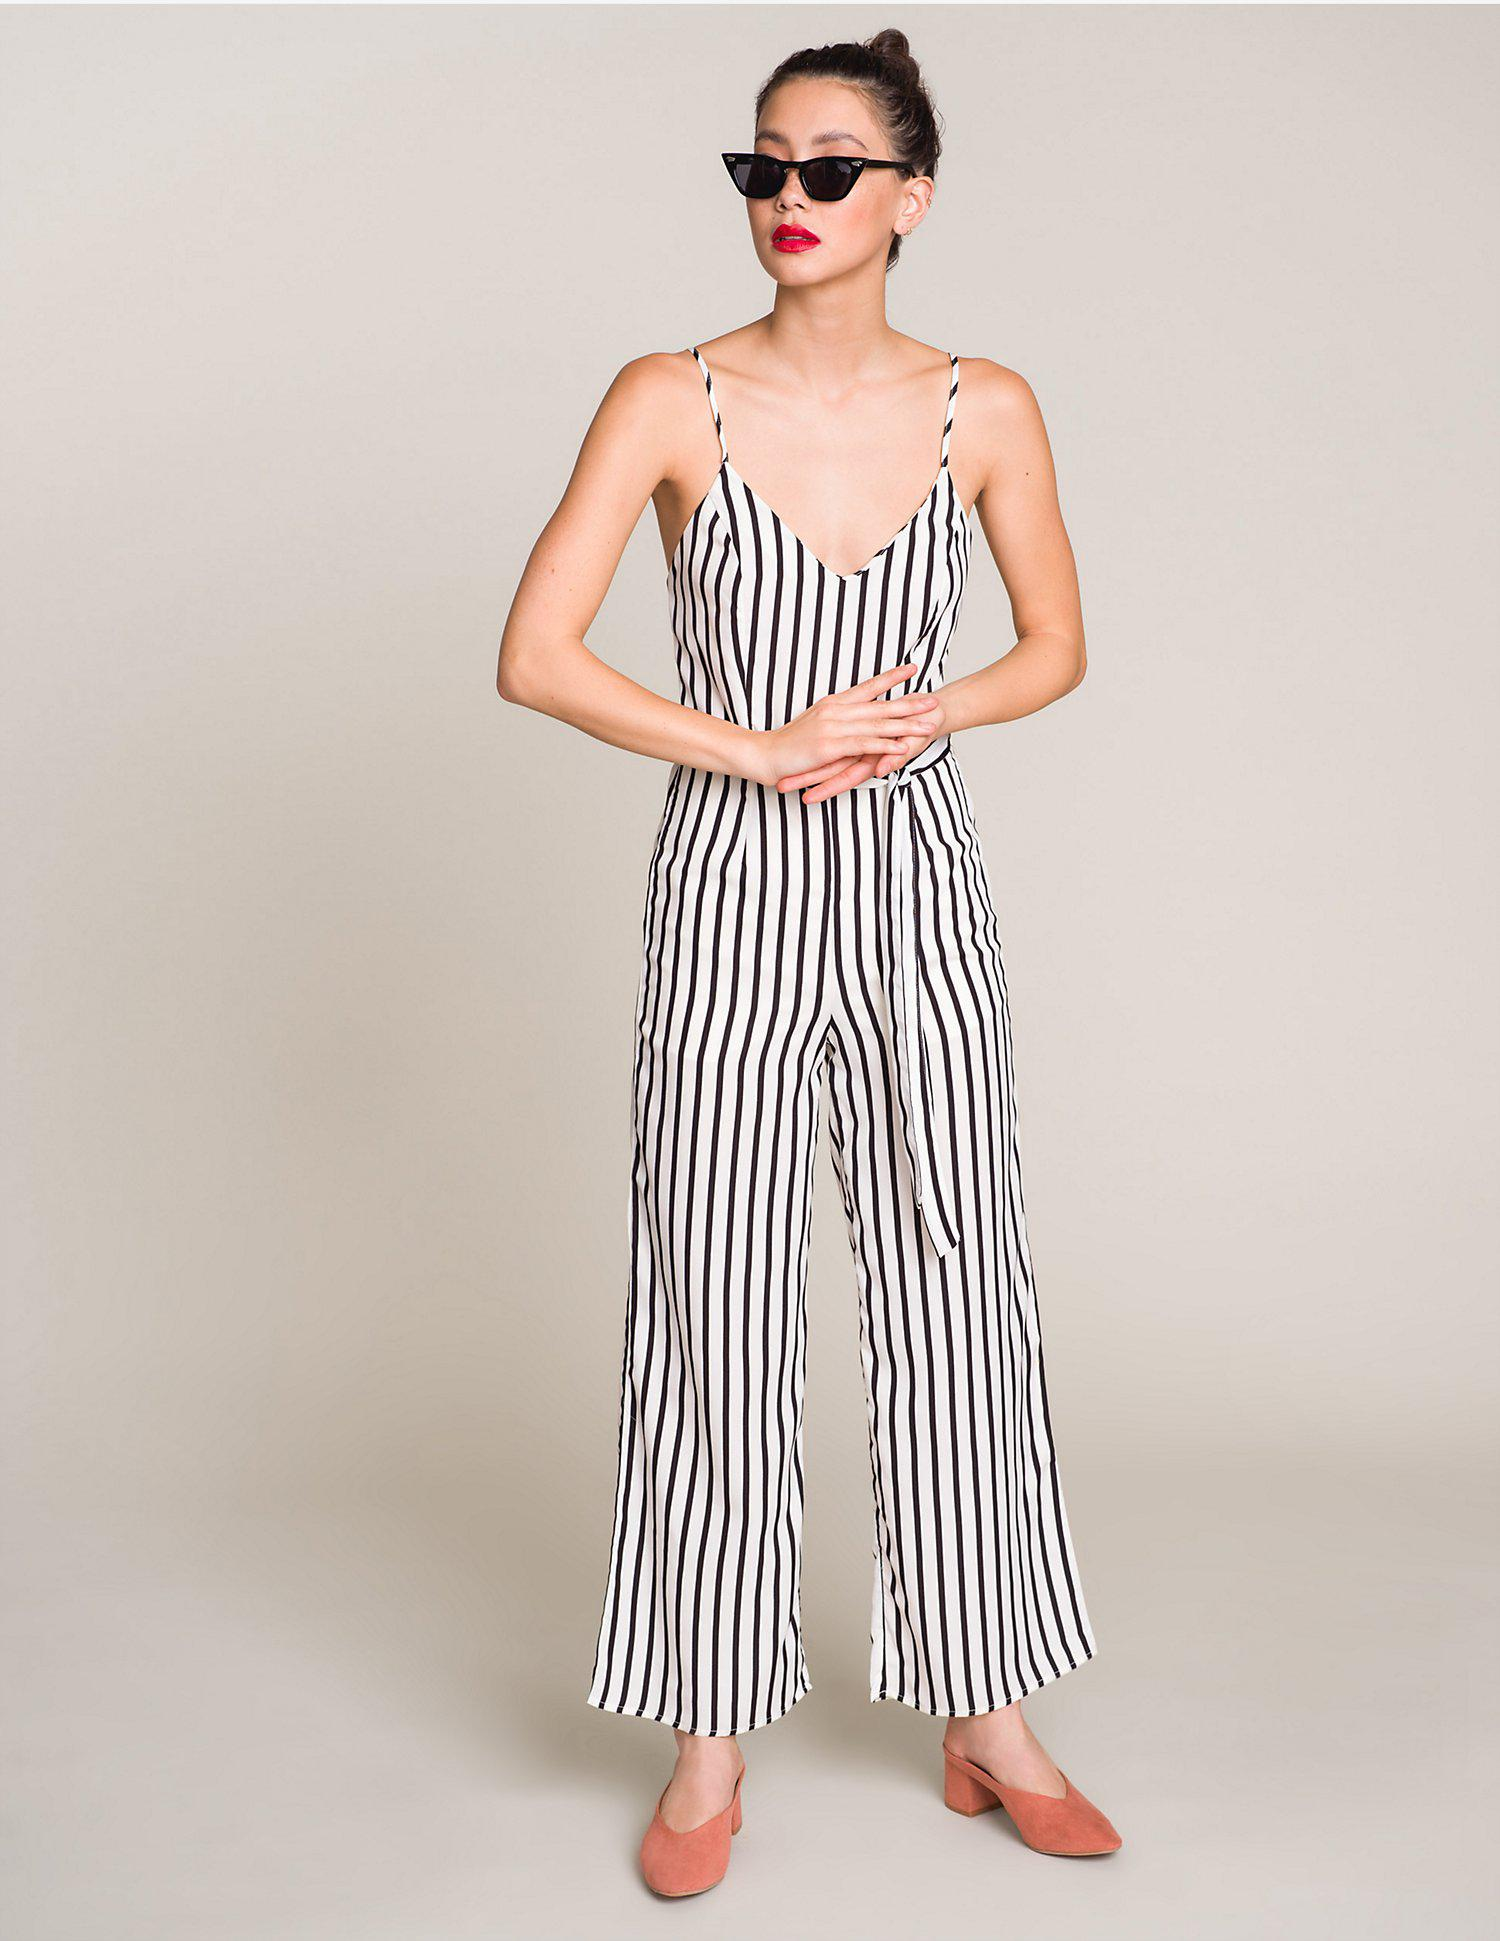 8eca2d92ea14 Lyst - Charlotte Russe Striped Wide Leg Jumpsuit in White